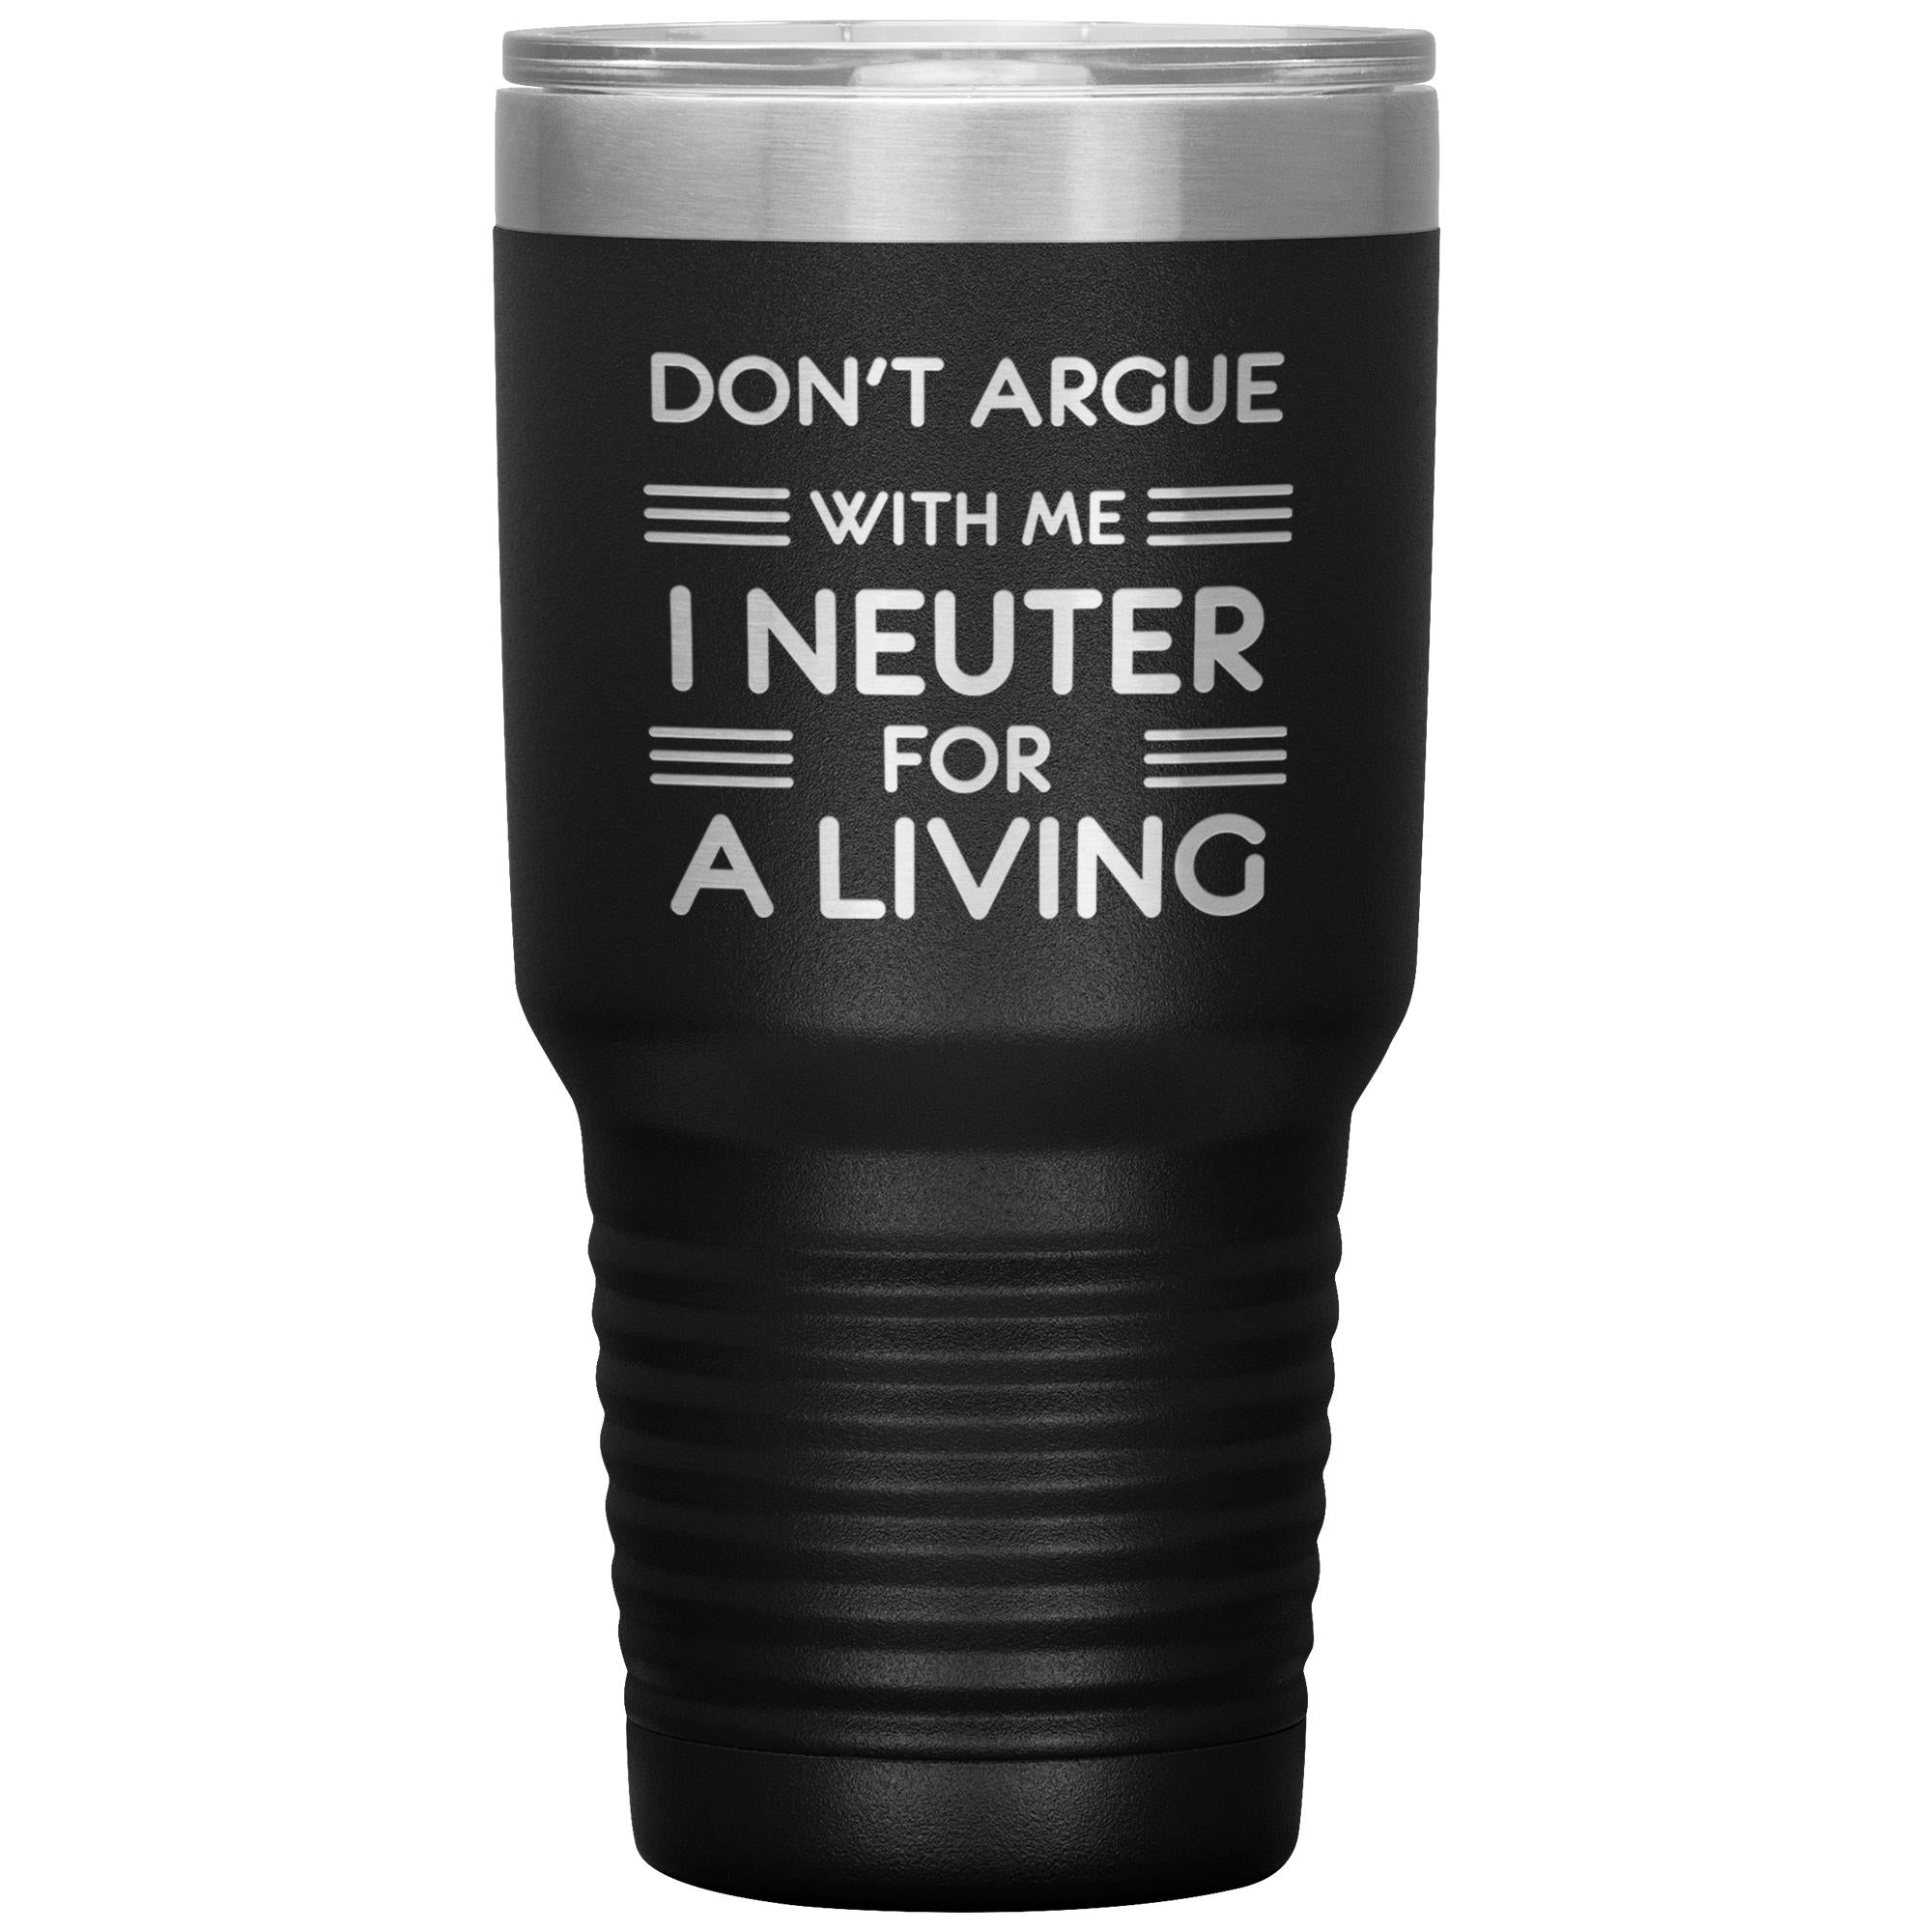 Don't argue with me I neuter for a living 30oz Tumbler-Tumblers-I love Veterinary